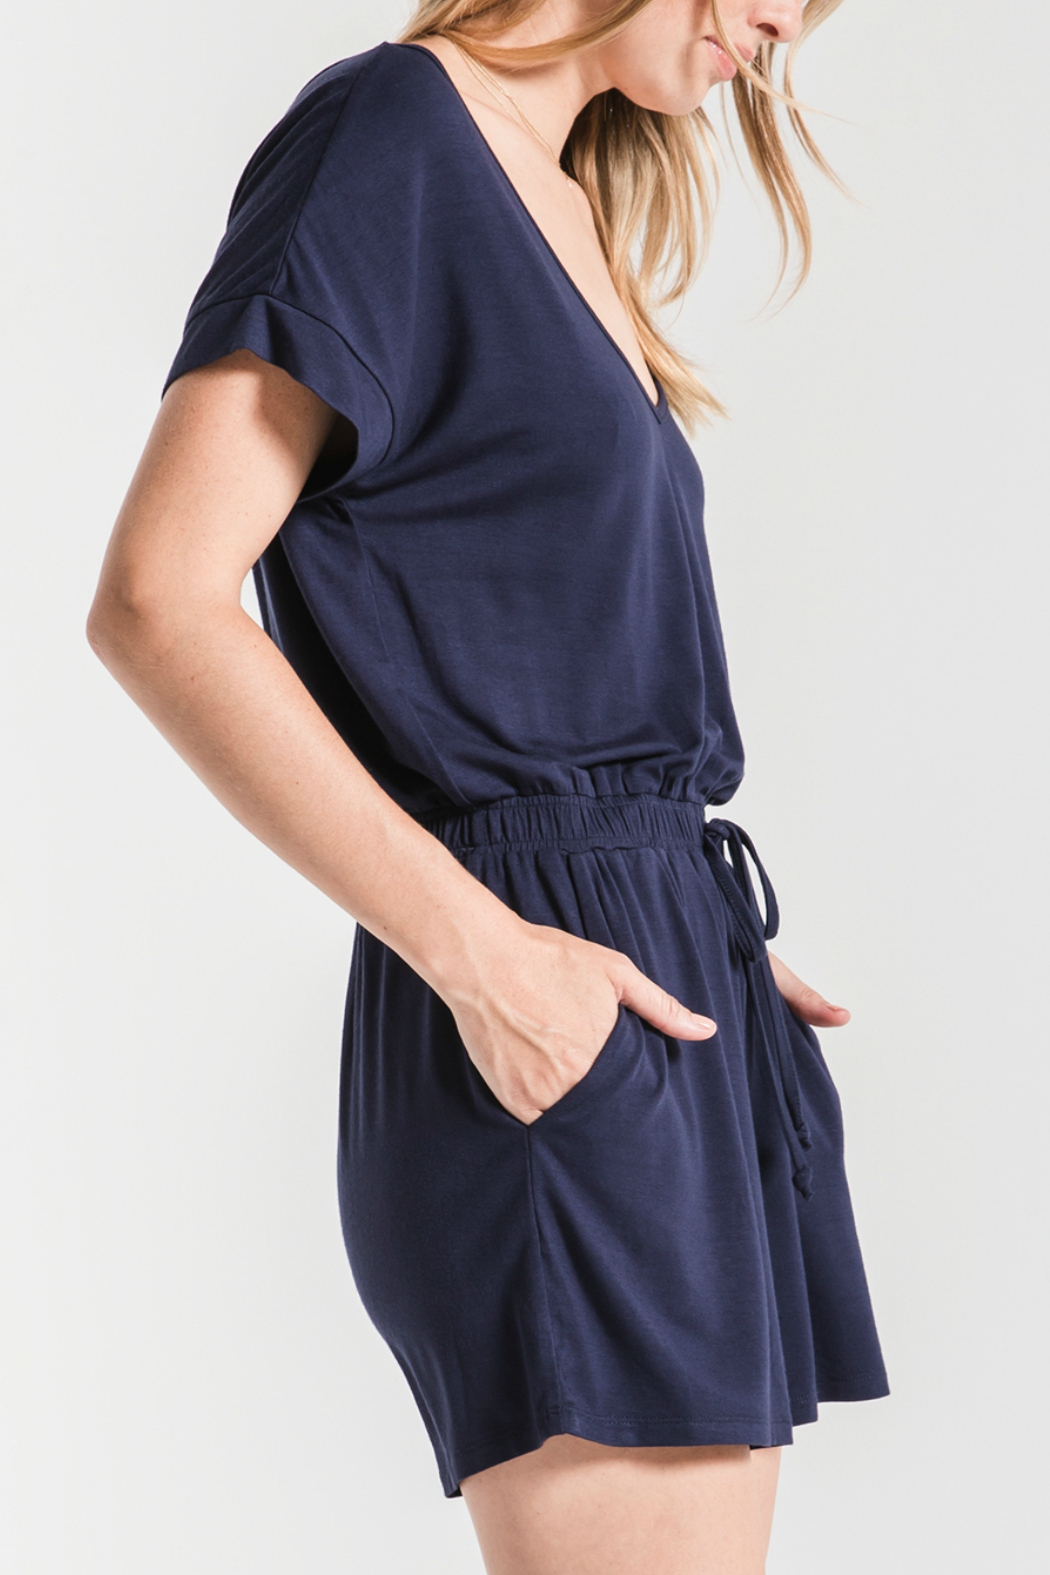 z supply Blaire Sleek Jersey Romper - Front Full Image